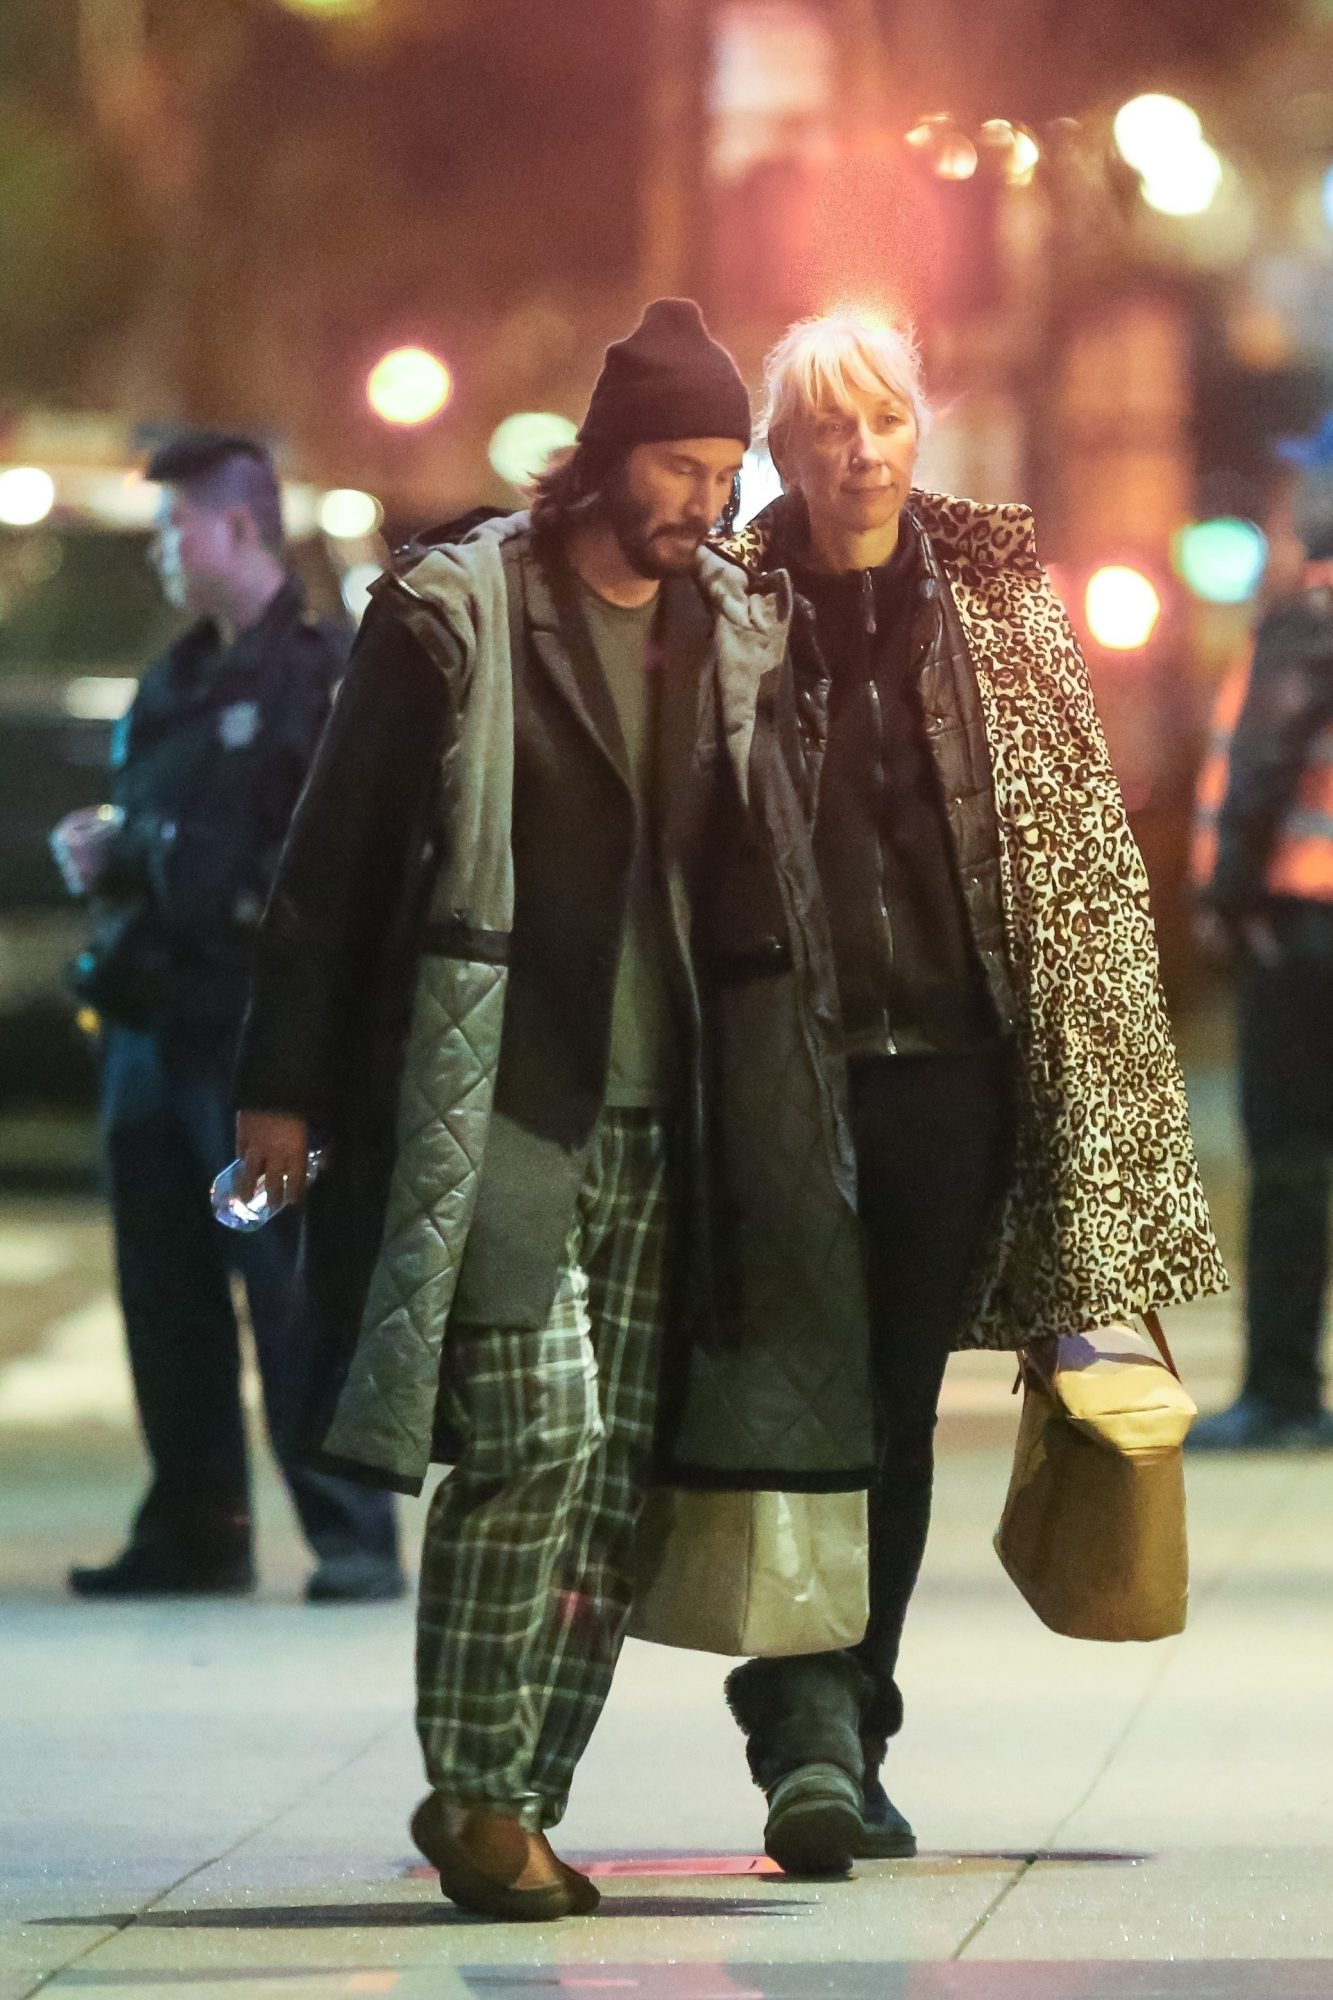 Keanu Reeves spotted out with girlfriend Alexandra Grant on the set of the highly anticipated 4th installment of the Matrix franchise